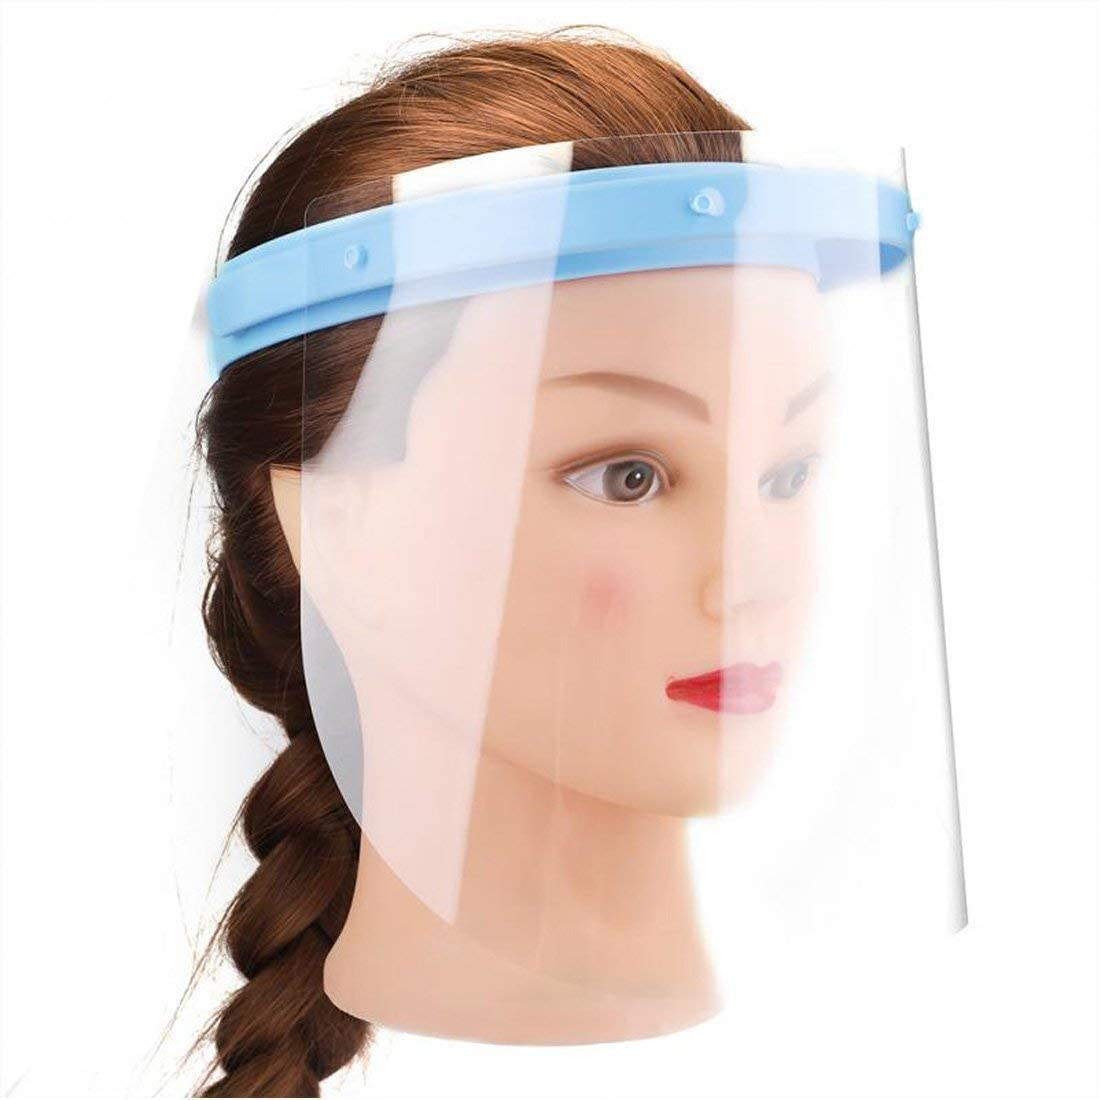 Afoxsos Anti-Fog Full Face Shield 5 Holders with 50 Plastics Anti Saliva Protective Film Replaceable